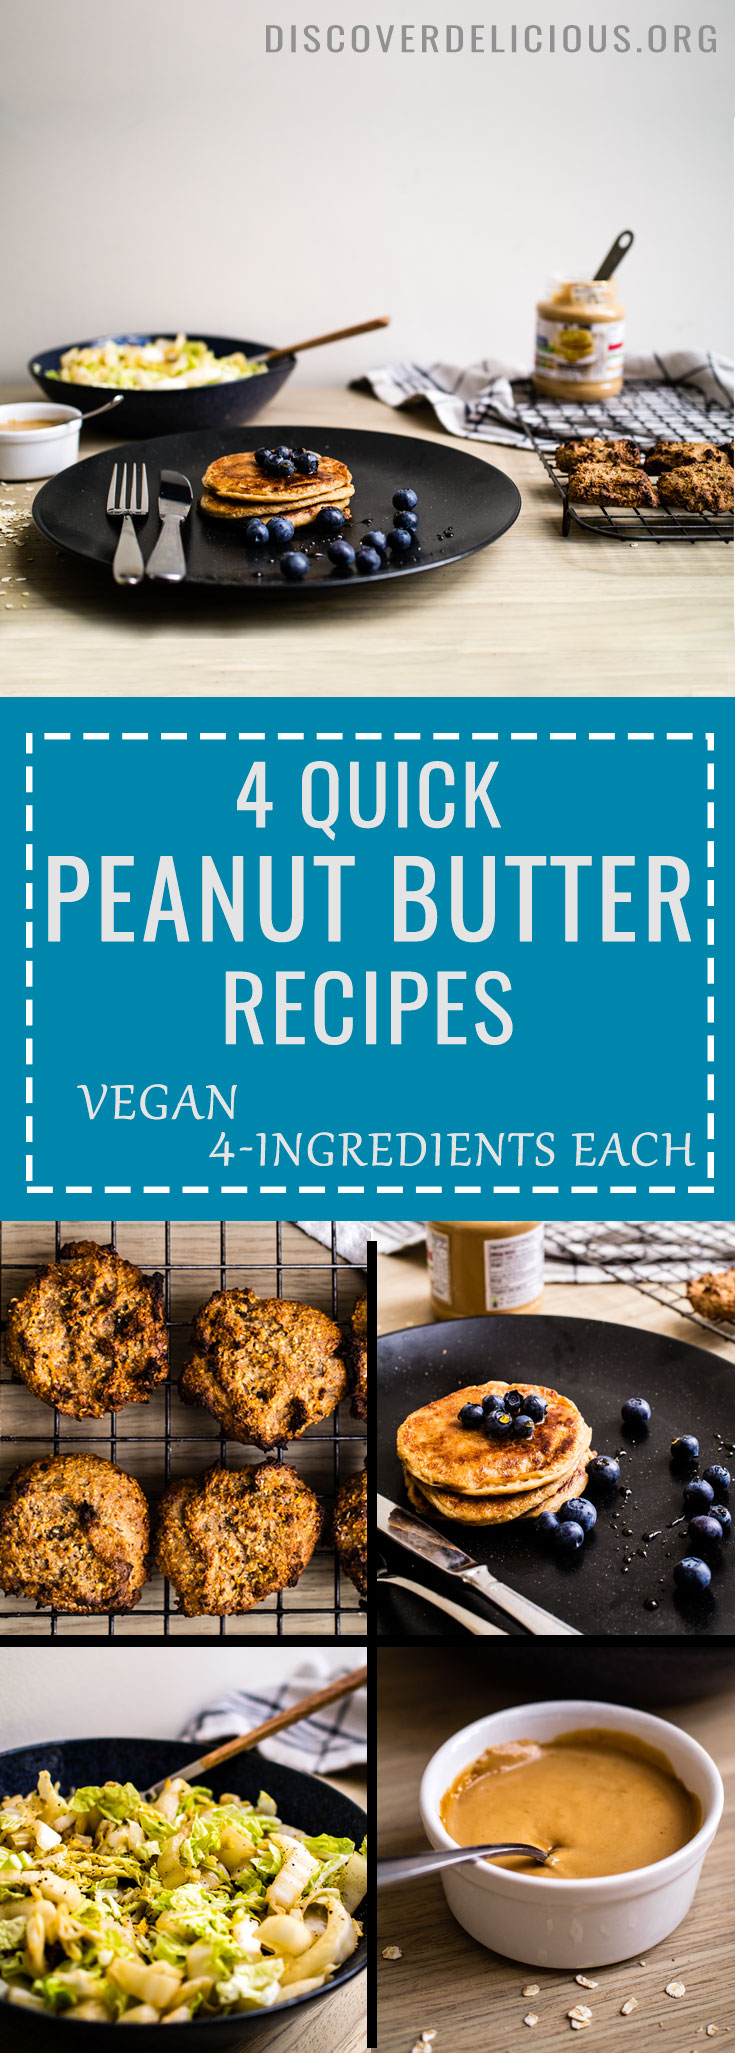 4 Quick Peanut Butter Recipes, 4 Ingredients each! Vegan too! | www.discoverdelicious.org